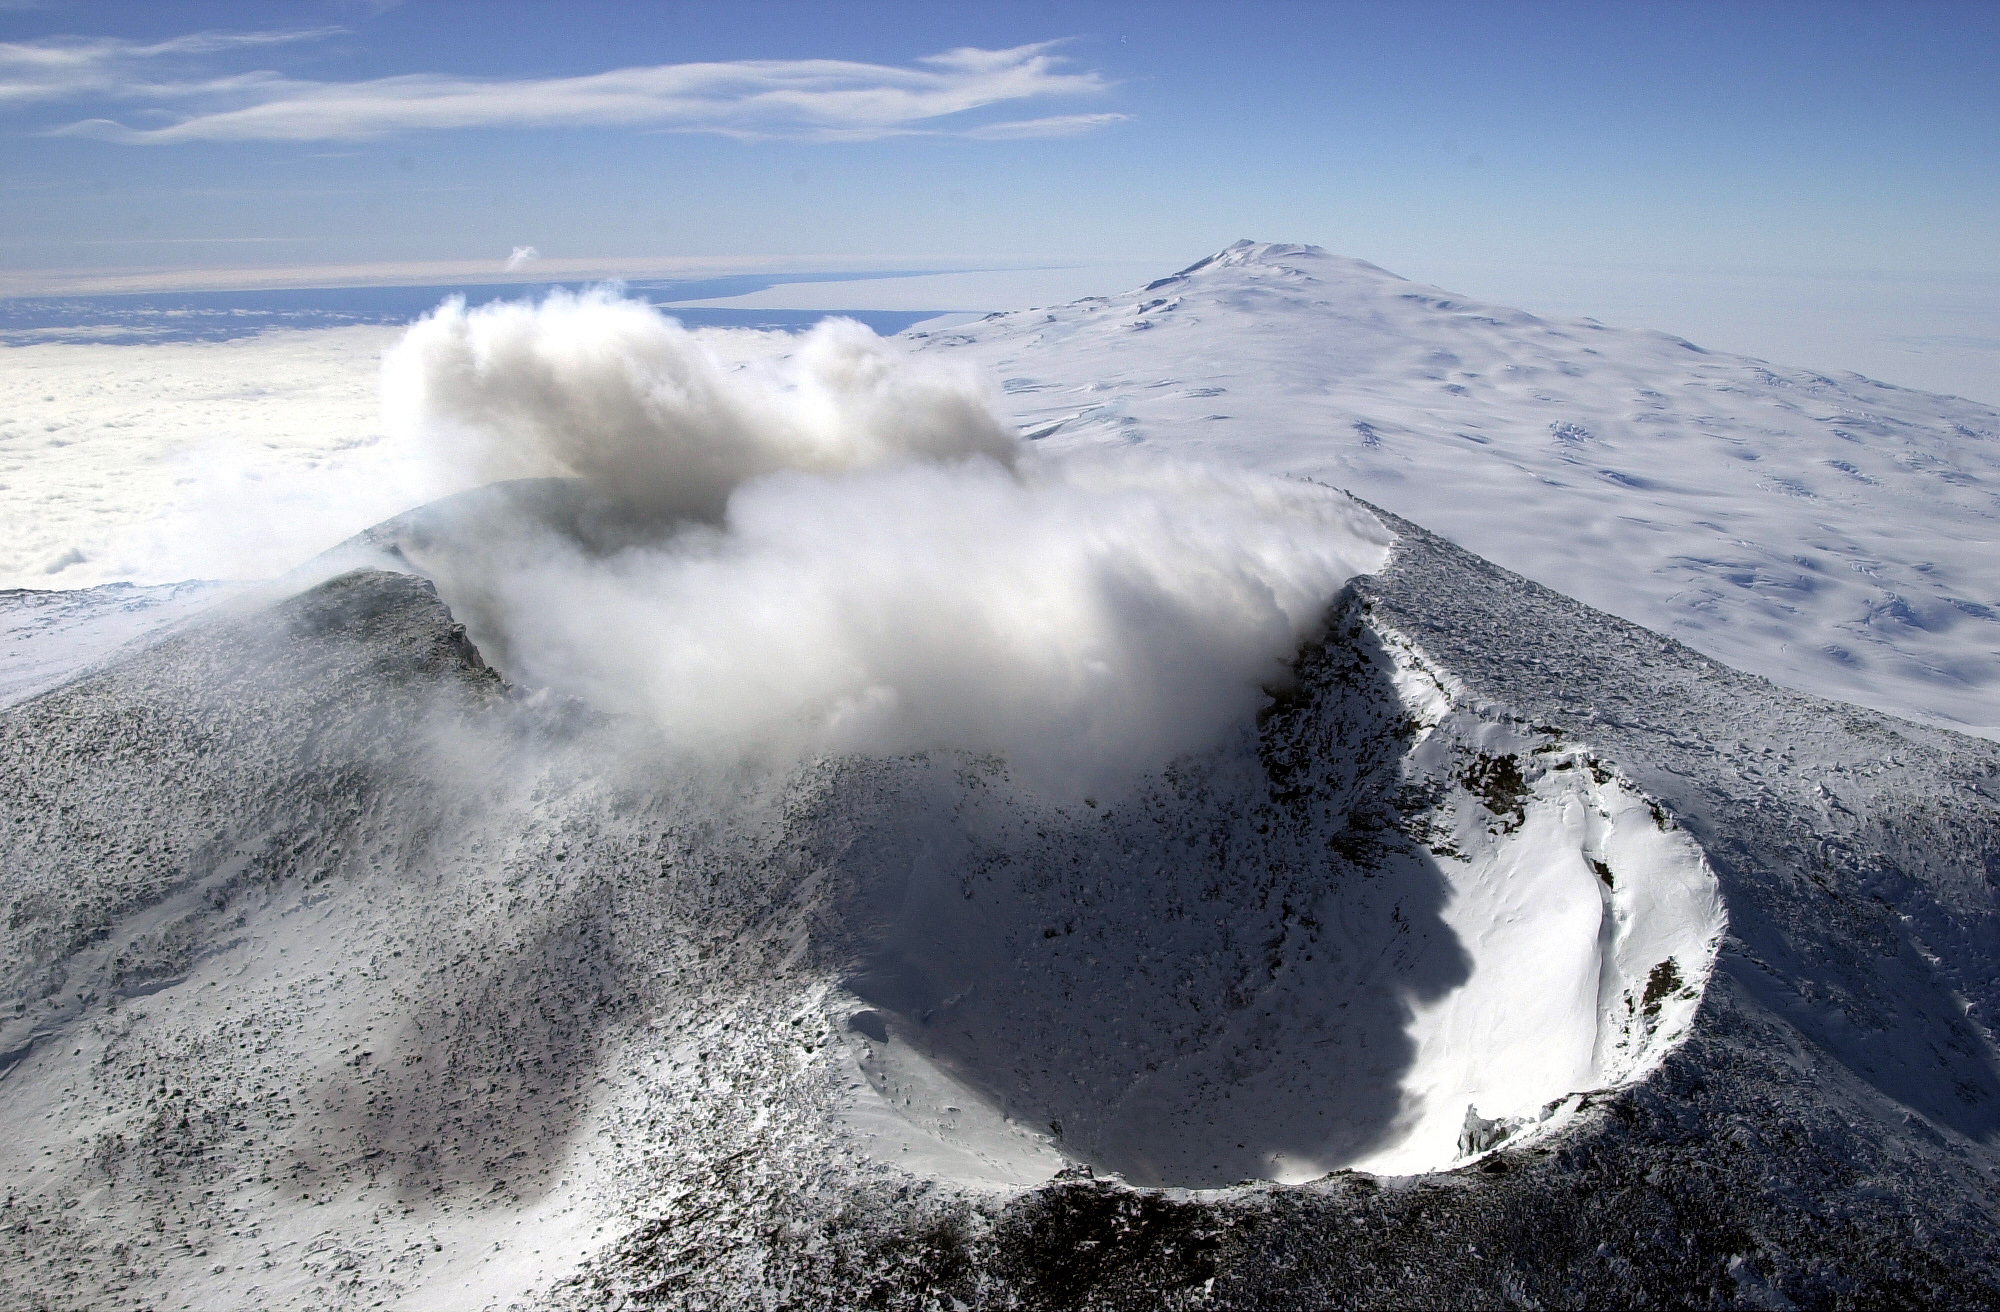 Aerial view of a volcanic cone with steam coming from it.